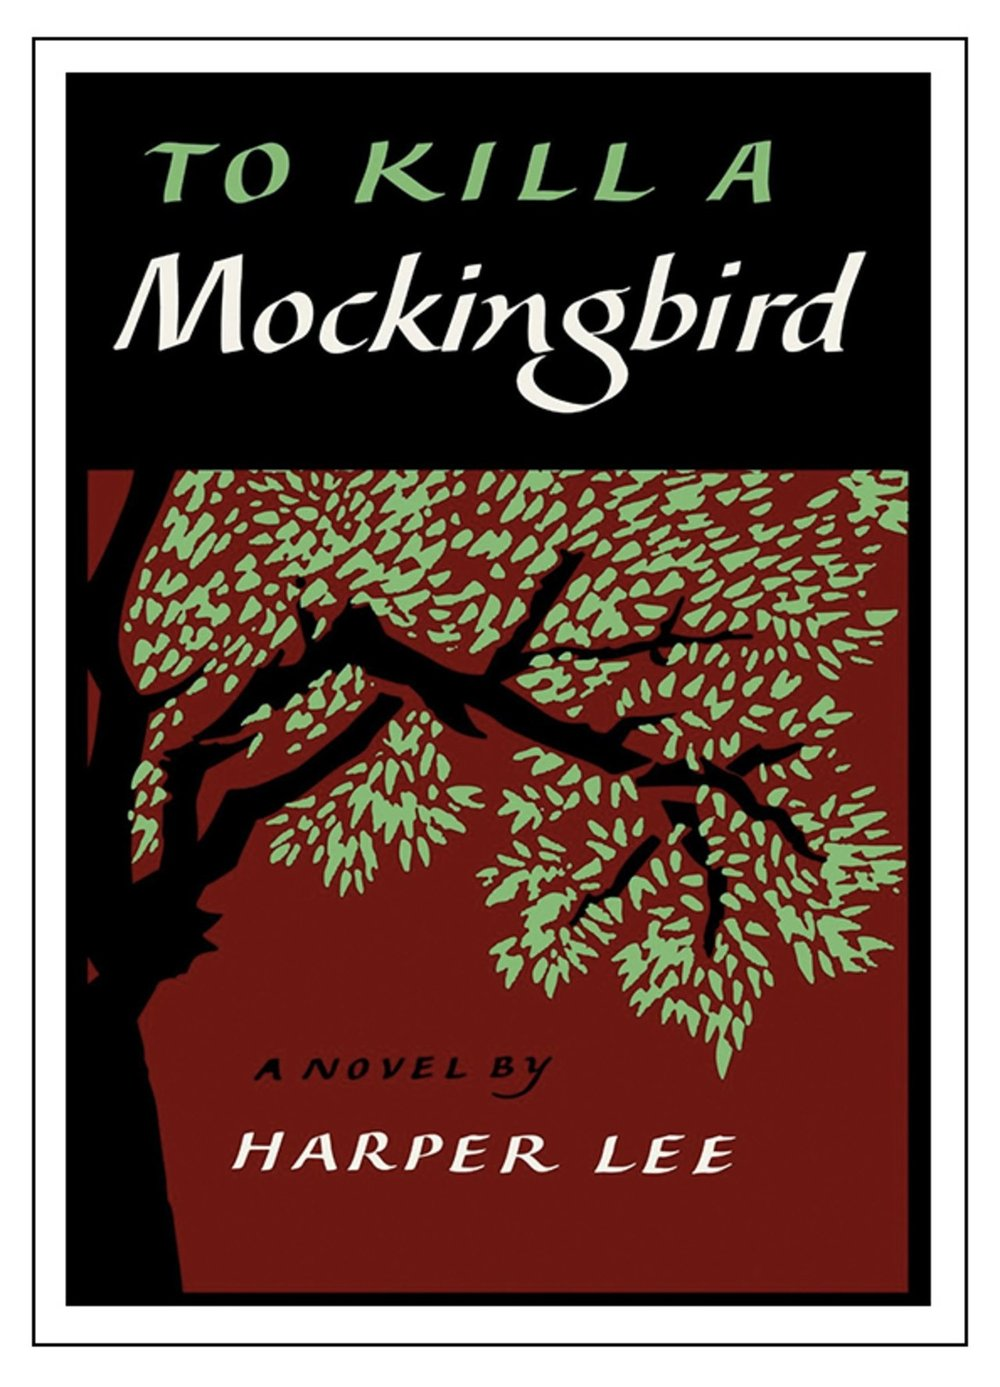 To Kill A Mockingbird by Harper Lee - Jo's favorite book! She keeps a copy with her always. Have you read it?